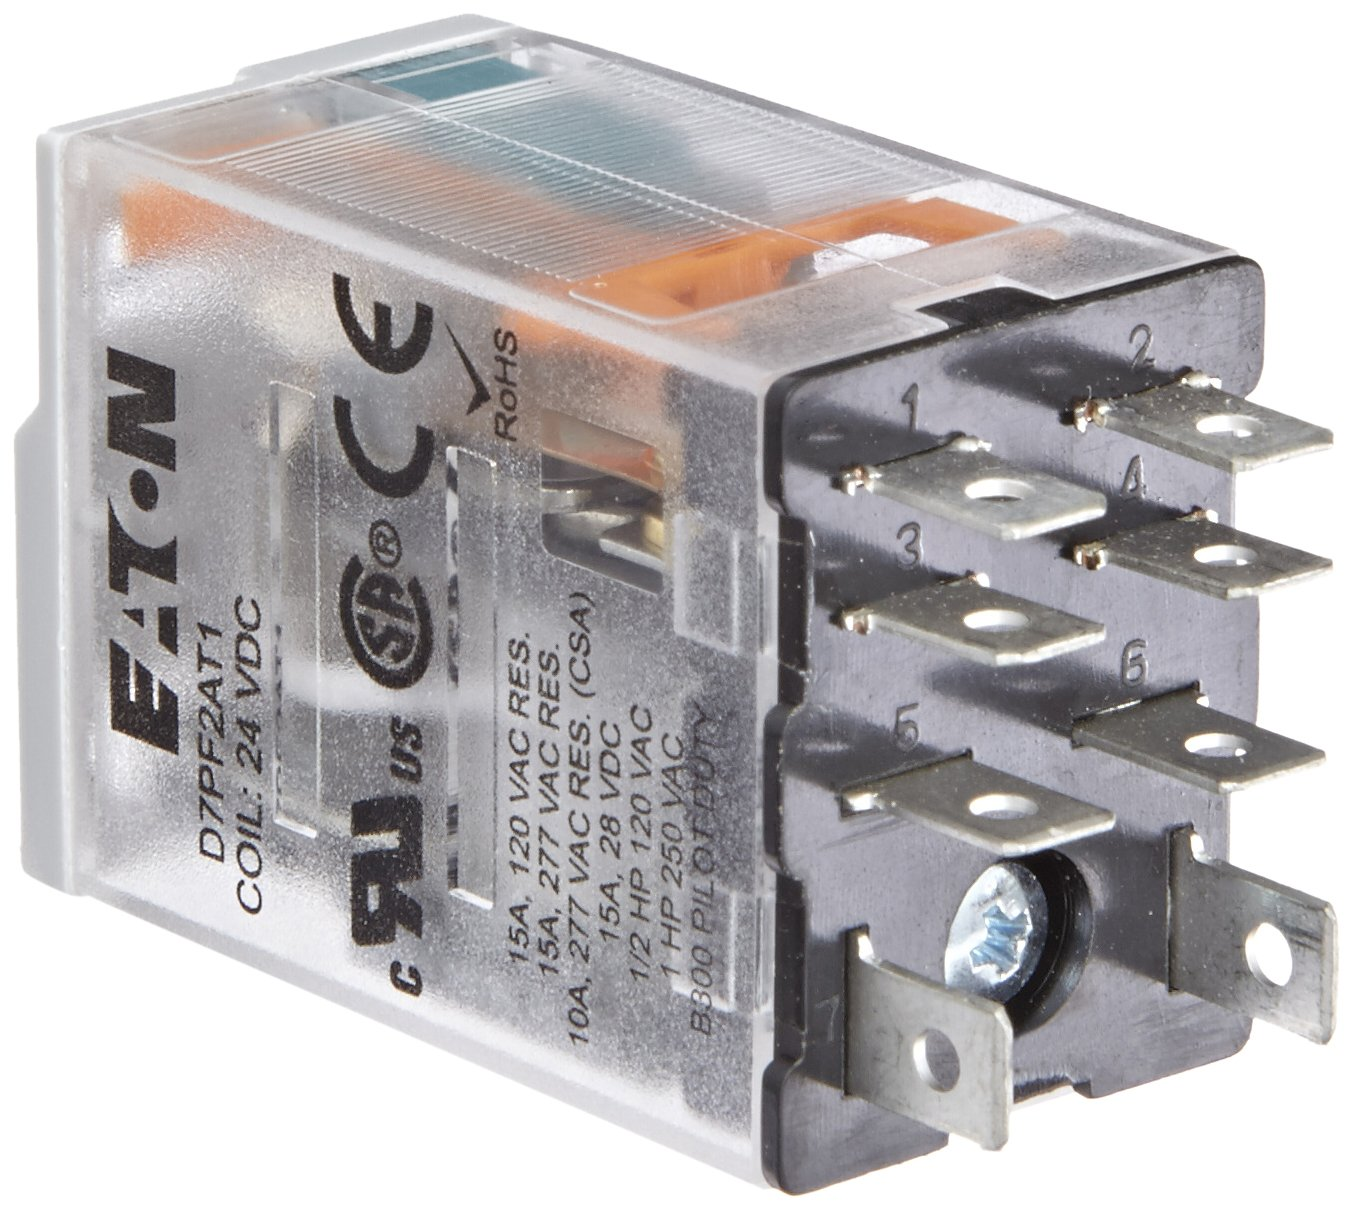 Eaton D7pf2at1 General Purpose Relay 15a Rated Current Dpdt Nc Spst 8211 Normally Closed Contact Configuration 24vdc Coil Voltage 650ohm Resistance Electronic Relays